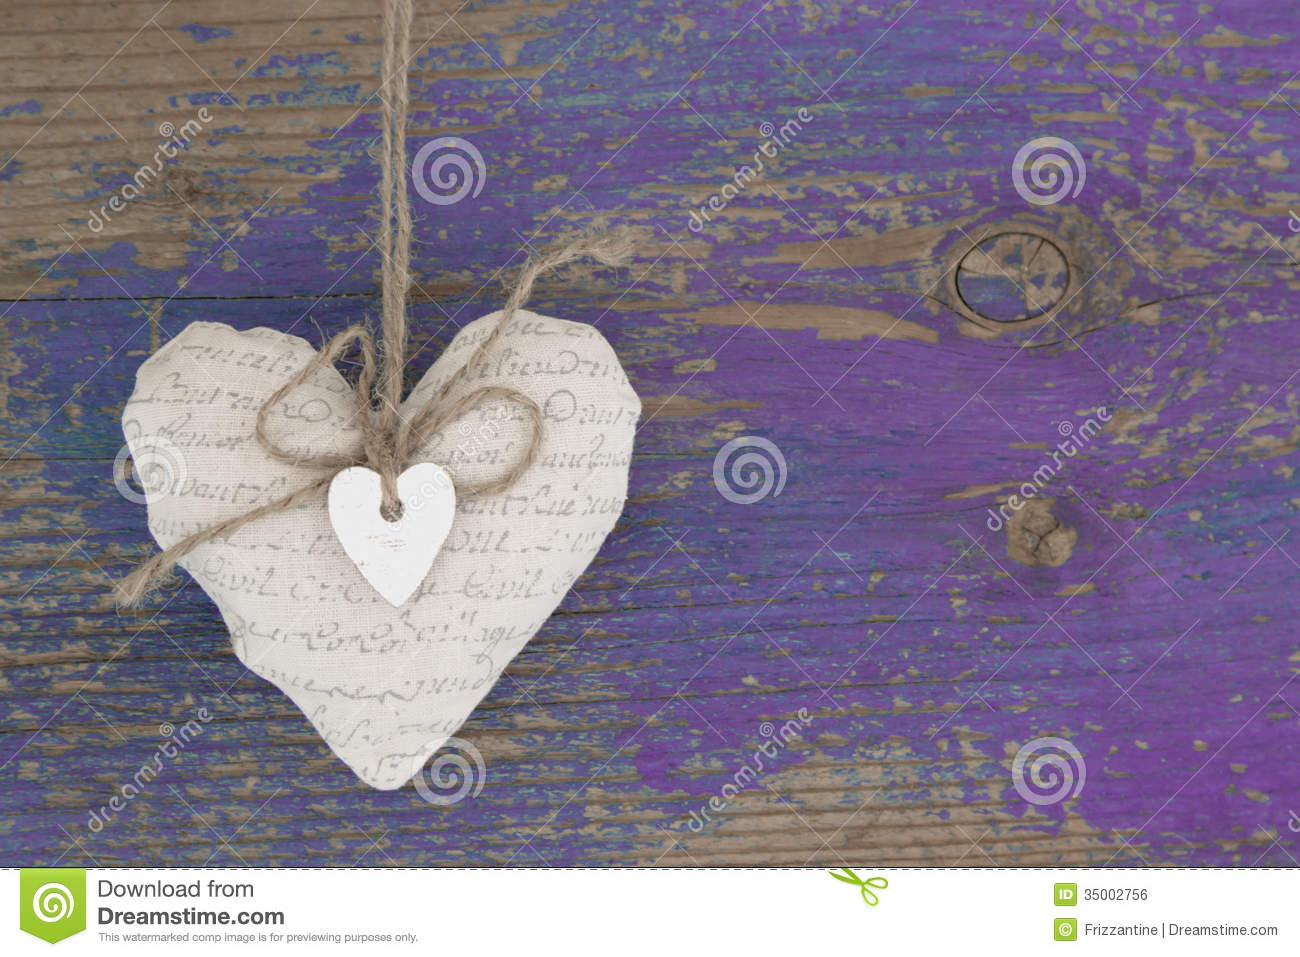 Hanging heart and purple wooden background in country style.